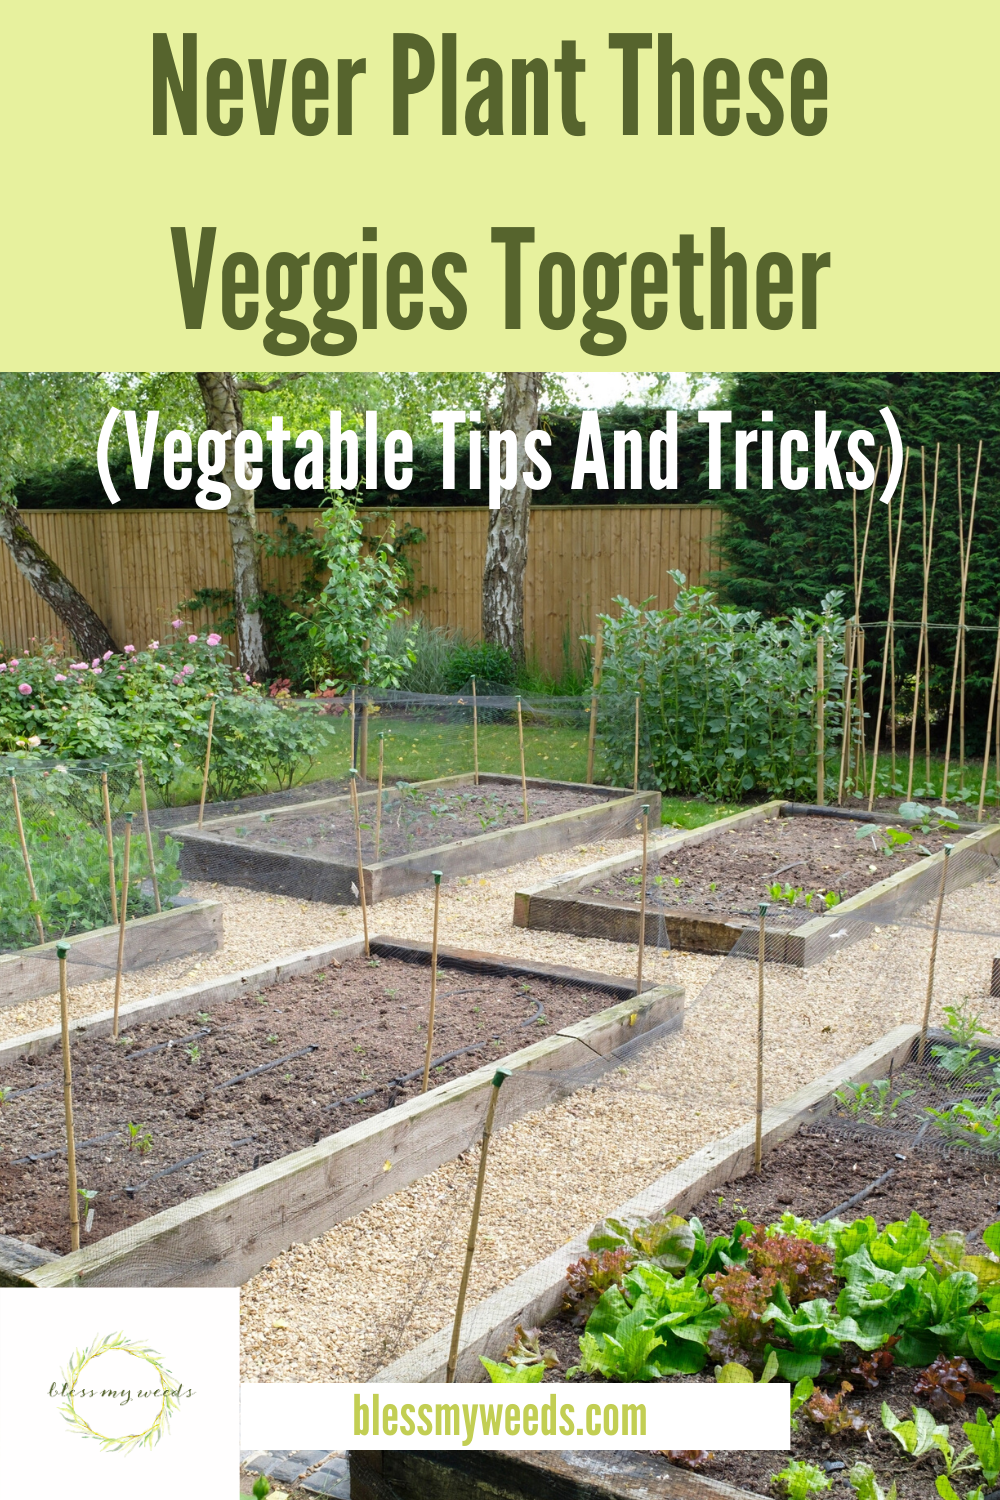 Vegetable Gardening: NEVER Plant These Veggies Together ~ Bless My Weeds